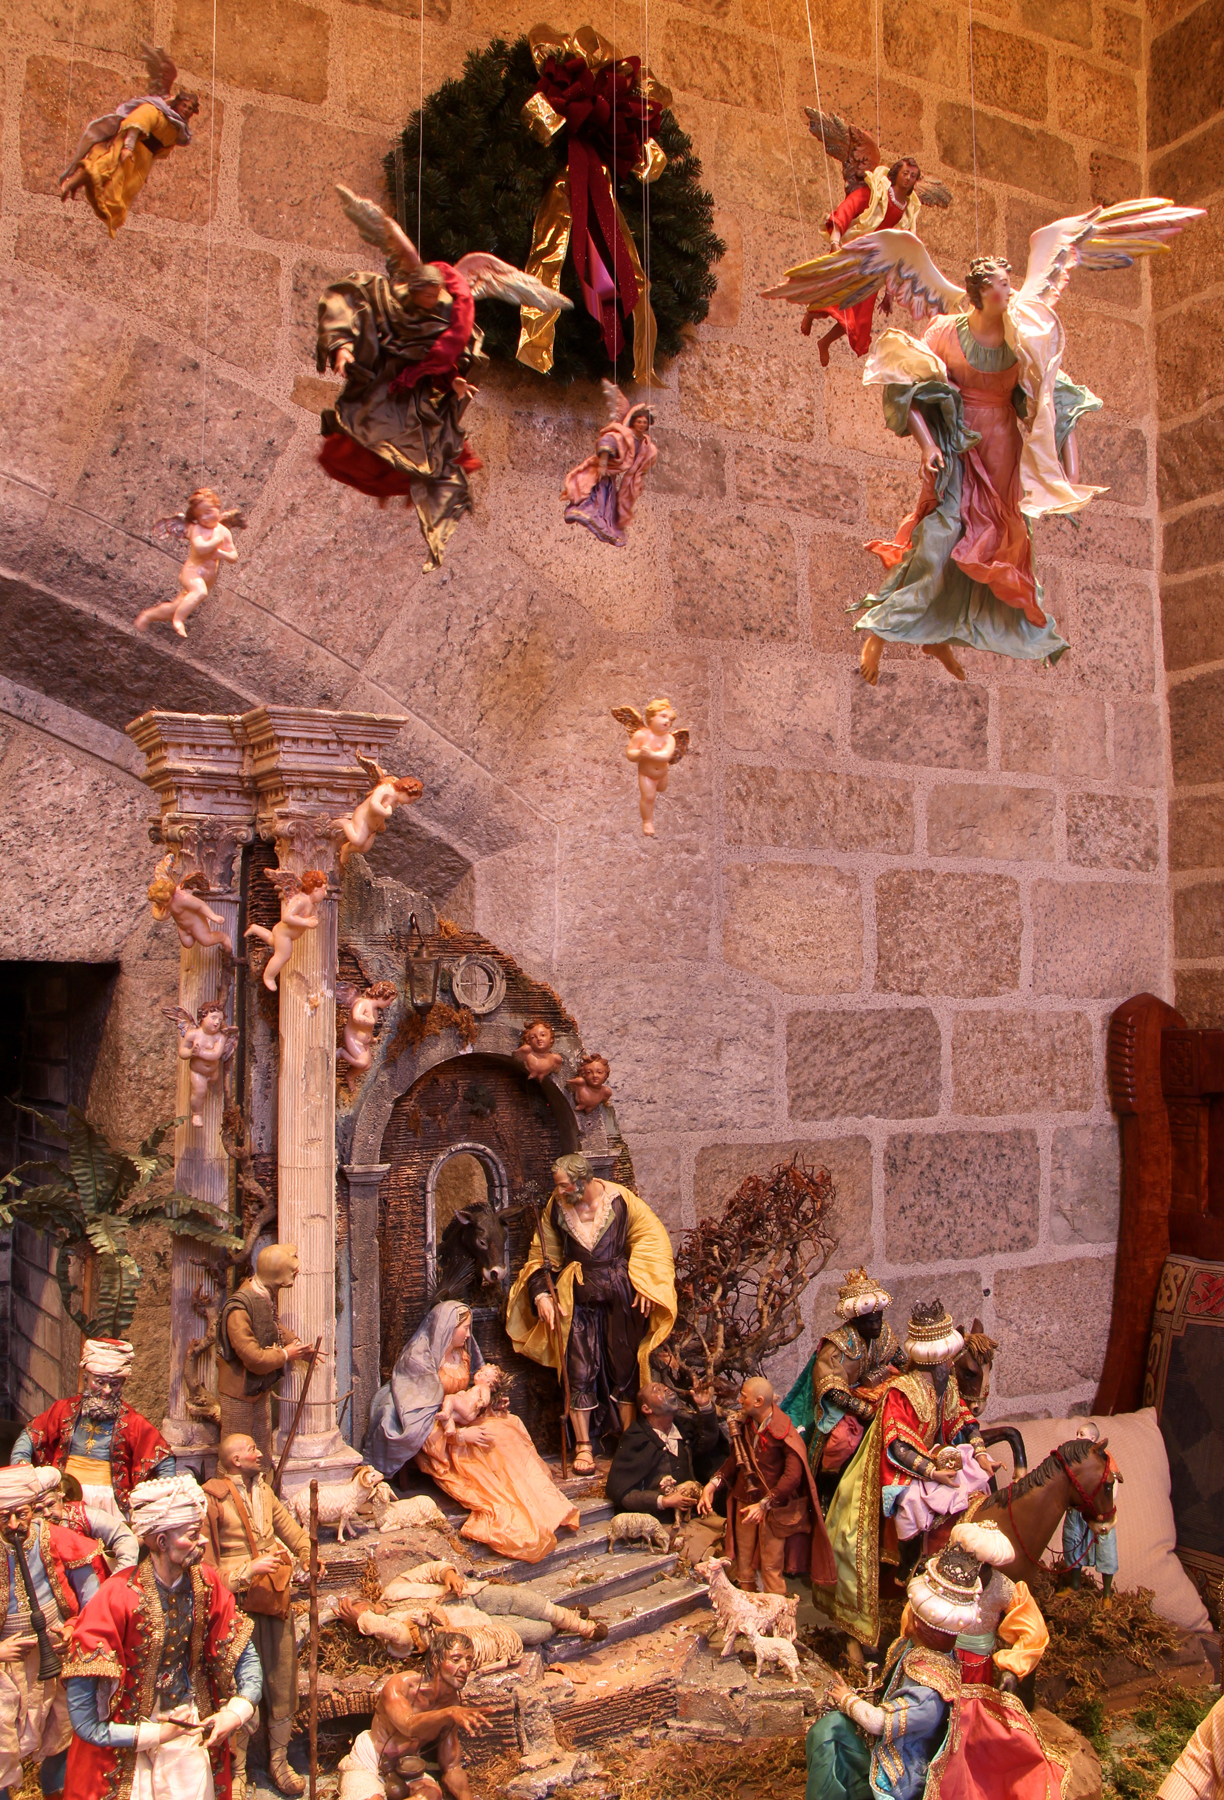 The figures in this magnificent Presepio, or Nativity scene, date to the late 19th and early 20th centuries. They were collected over a period of more than thirty years by the late Elizabeth Anne Evans of Bucks County, Pennsylvania, during her annual trips to Naples, Italy. The Presepio is on loan from the Samuel S. Fleisher Art Memorial in South Philadelphia.